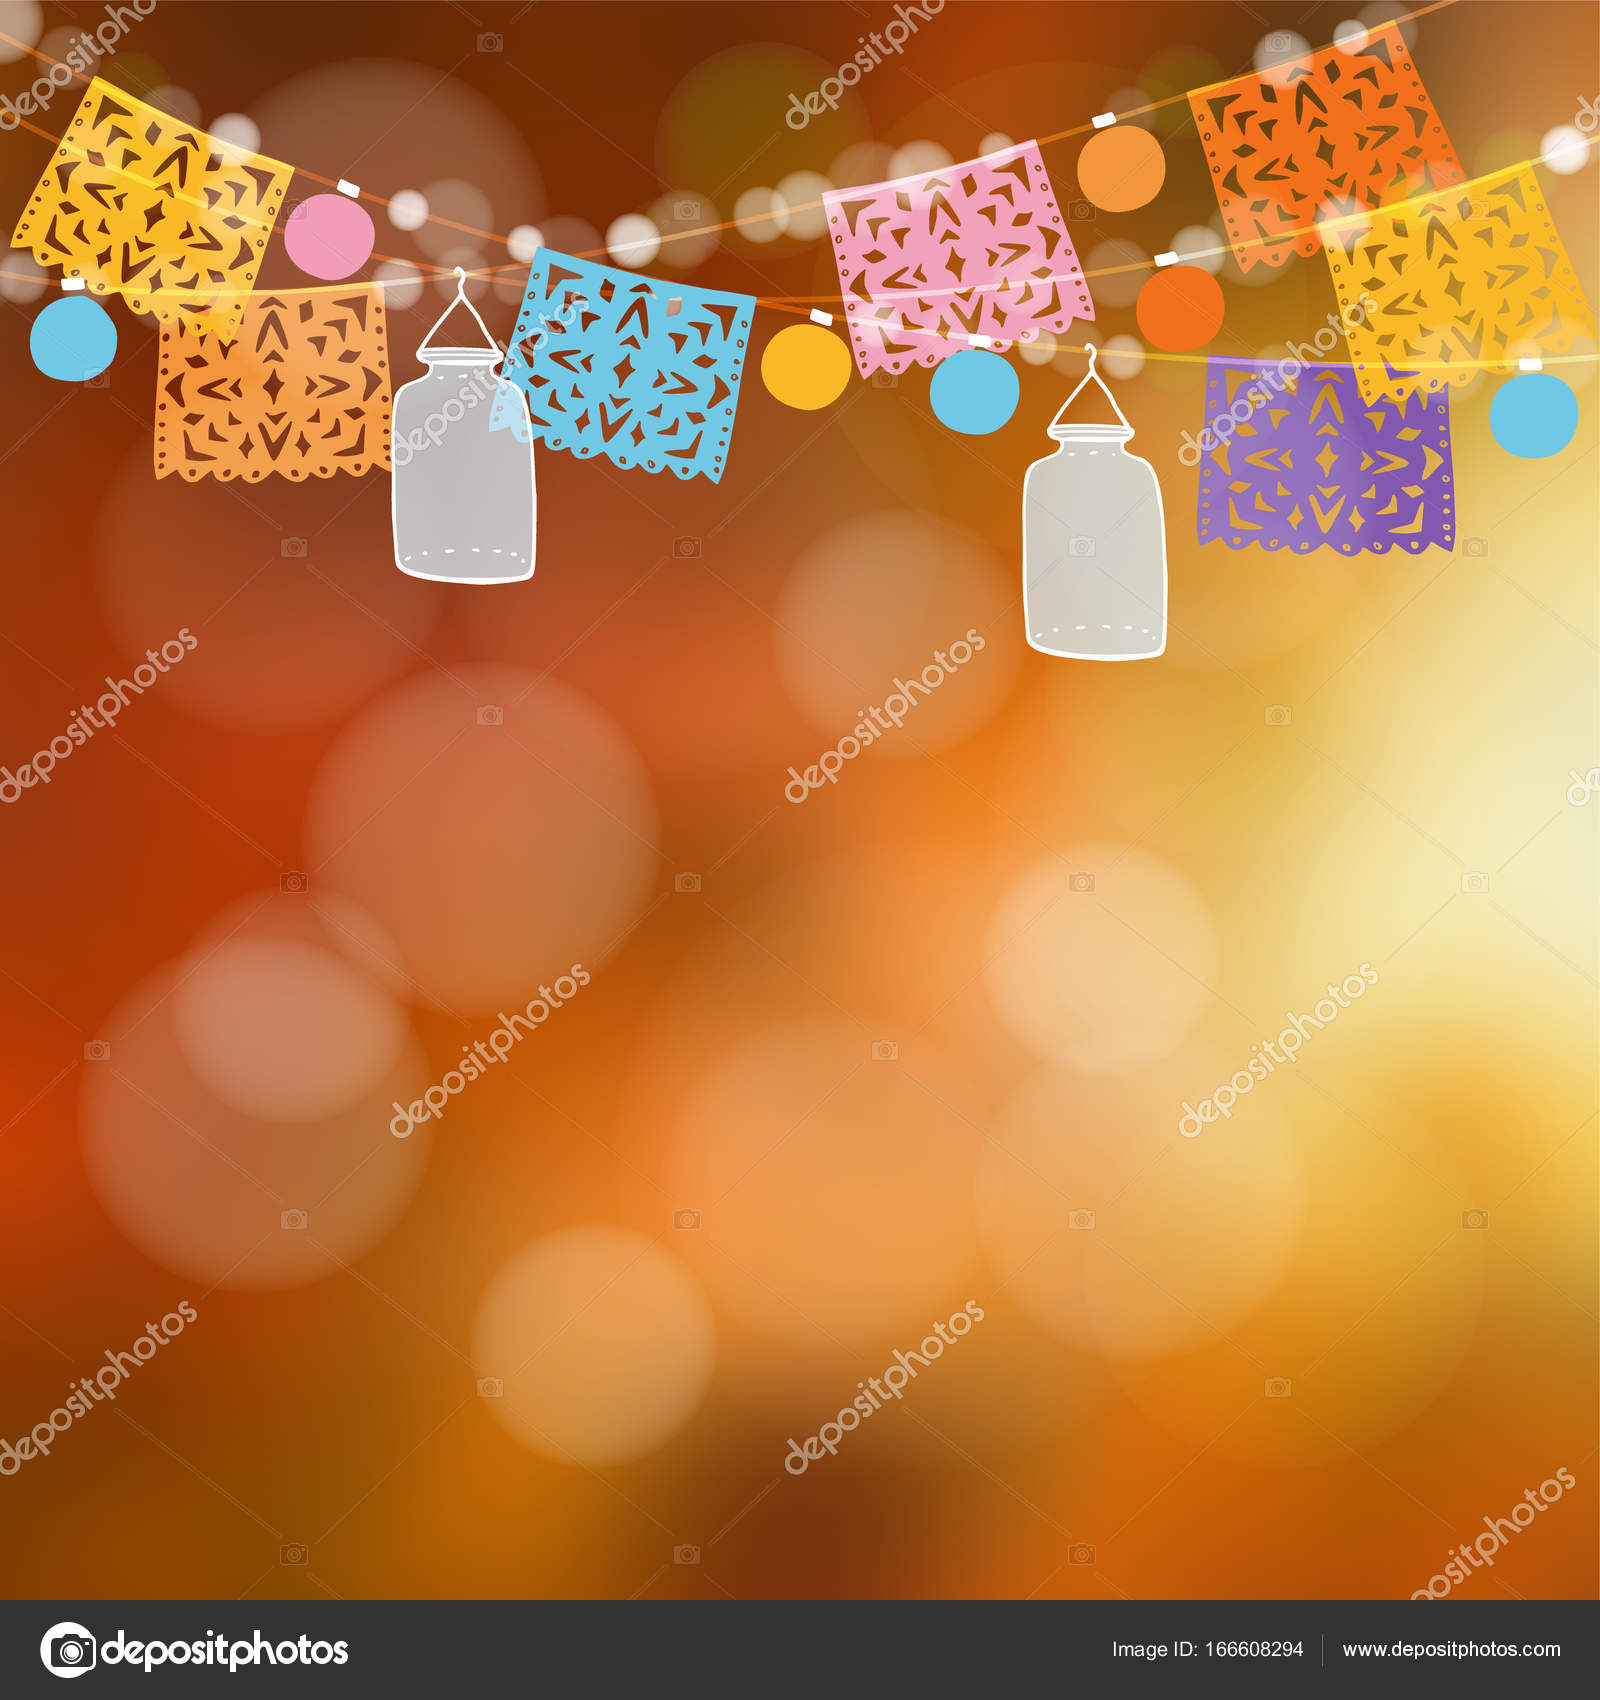 Mexican Day Of The Dead Garden Party Decoration Vector Illustration Background String Handmade Cut Colorful Flags Light Bulbs Glass Jar Lanterns